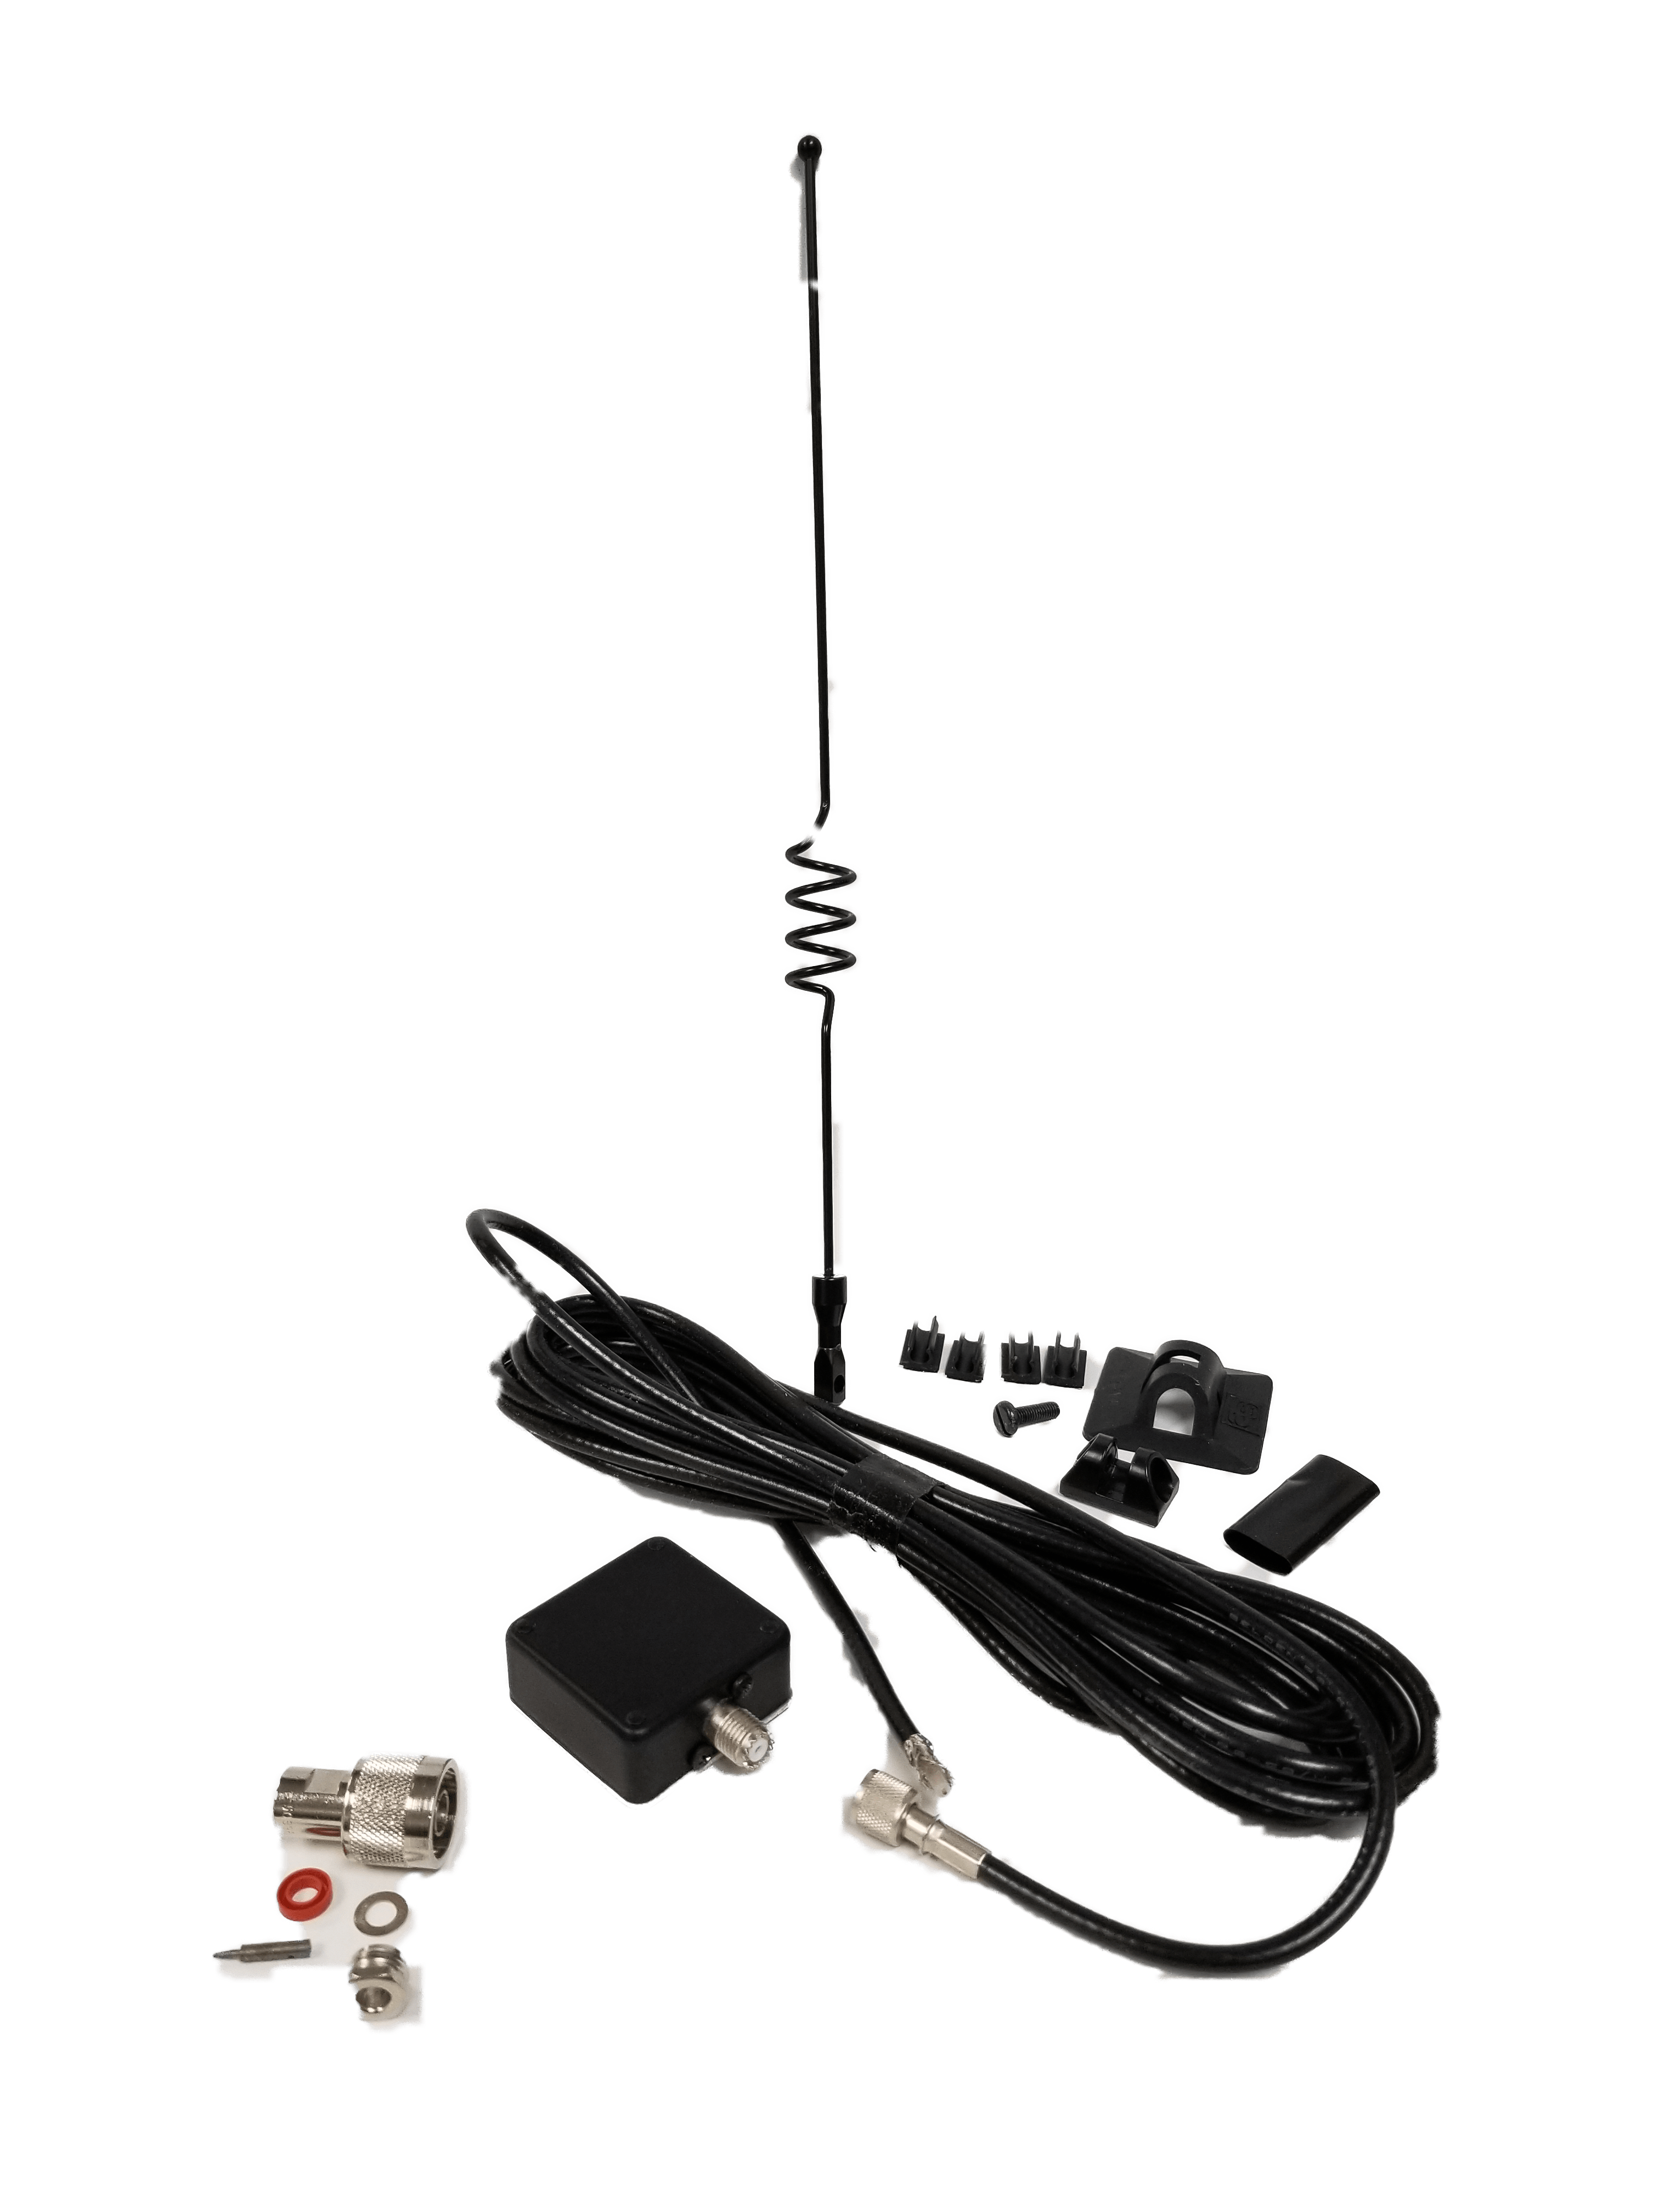 APG852.3N - Antenna Specialists On Glass 890-960 MHz Antenna